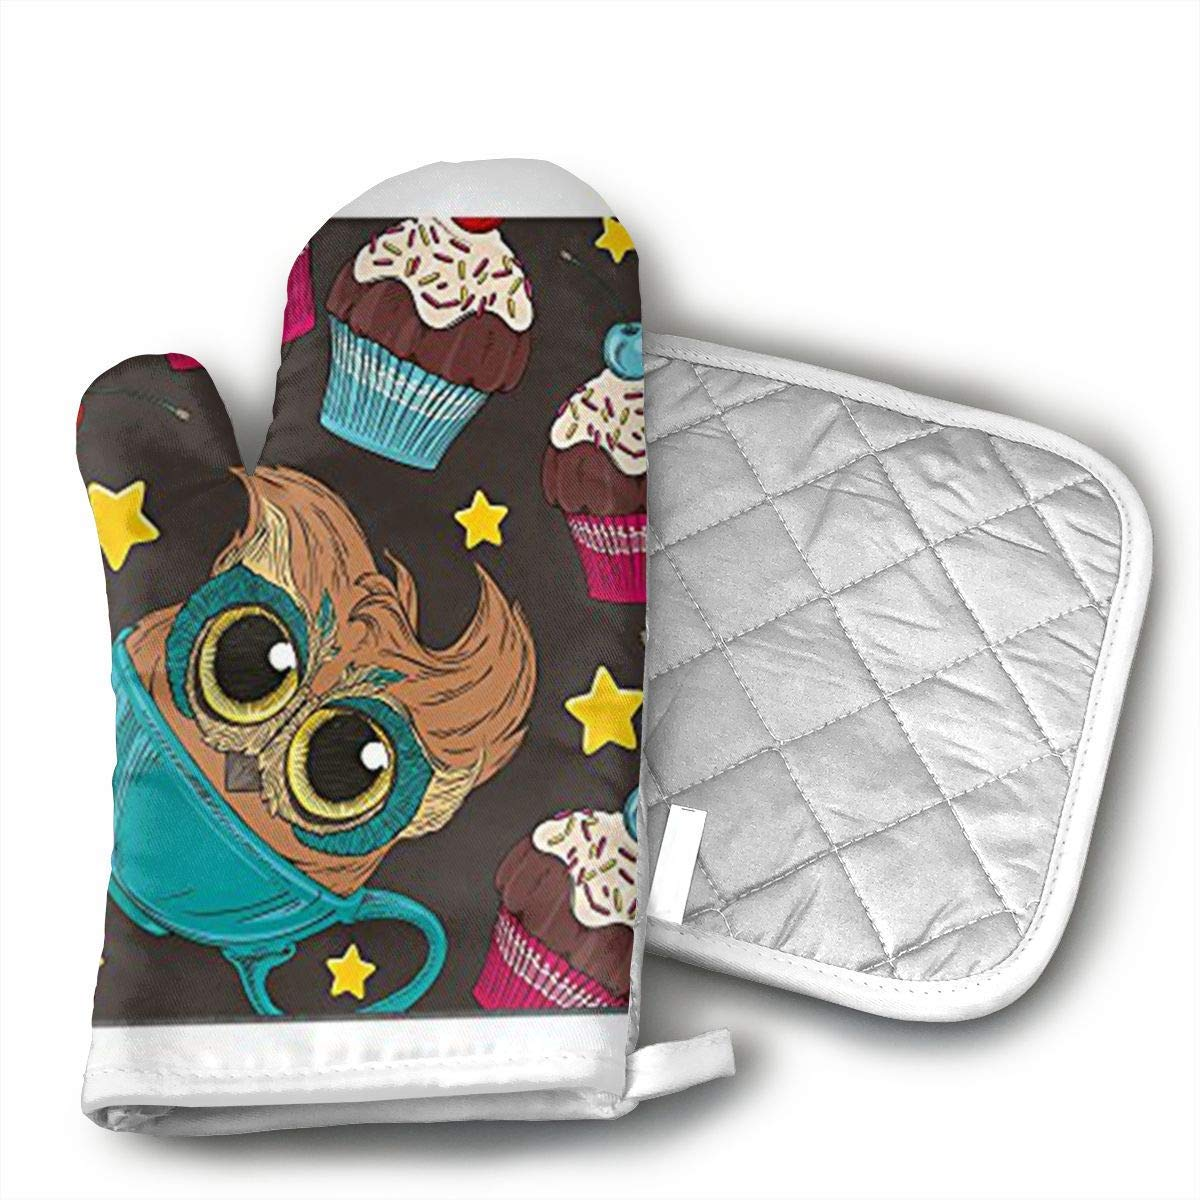 Owl and Cupcake Yourtablecloth Set of Oven Mitt and Pot Holder Or Oven Gloves-100% Cotton, High Heat Resistance, Superior Protection & Comfort¨CElegant Design